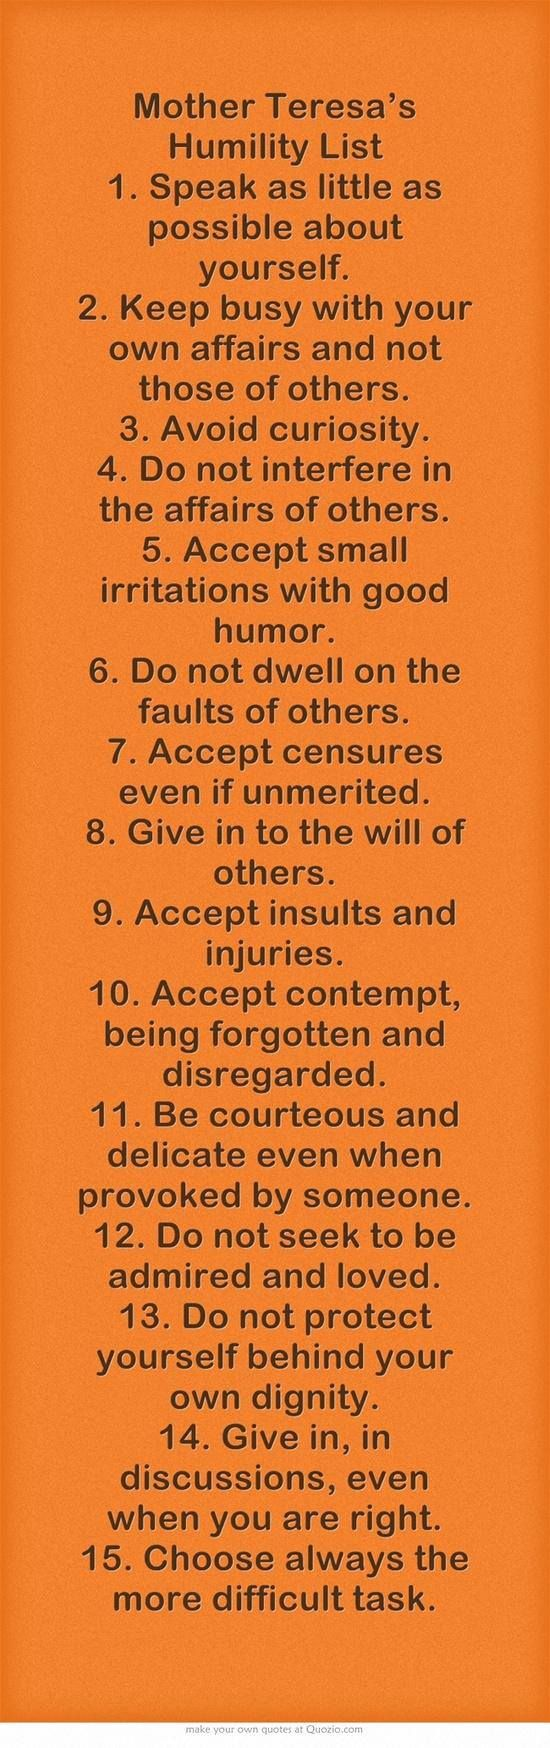 Blessed Mother Teresa's Humility List~I have to try some of these. I let things get to me that don't even really matter!